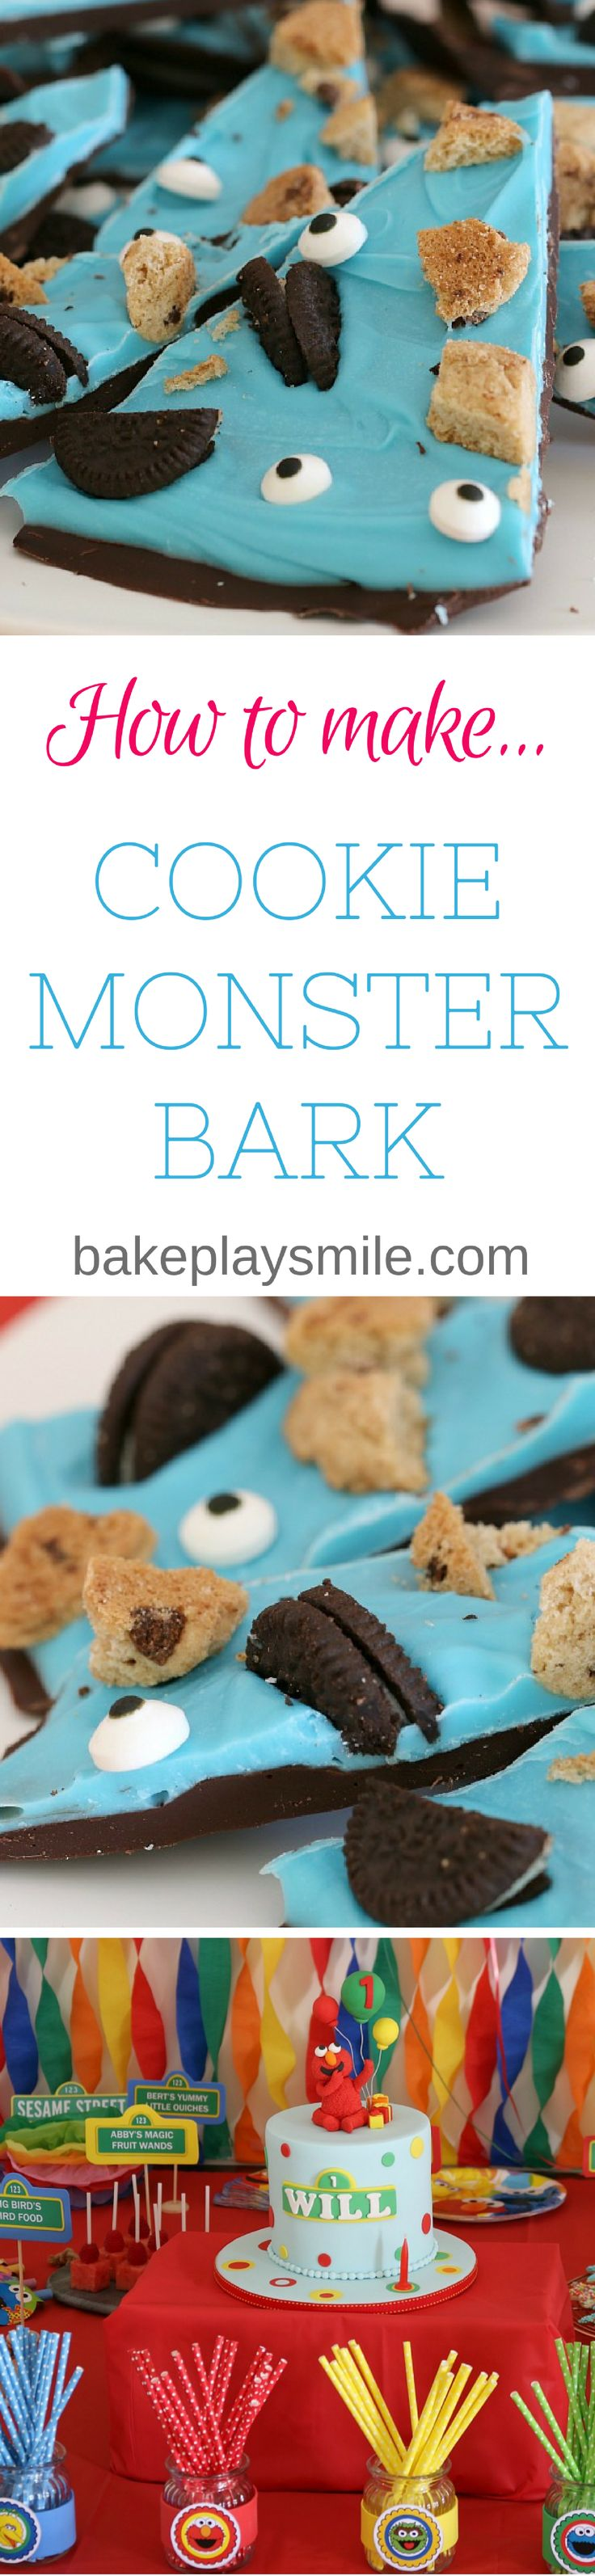 This Cookie Monster Bark will be the perfect treat for your Sesame Street party! With only 10 minutes preparation time and only 5 ingredients, it's quick easy and so yummy! #sesamestreet #sesamest #cookie #monster #bark #easy #recipe #kids #party #food